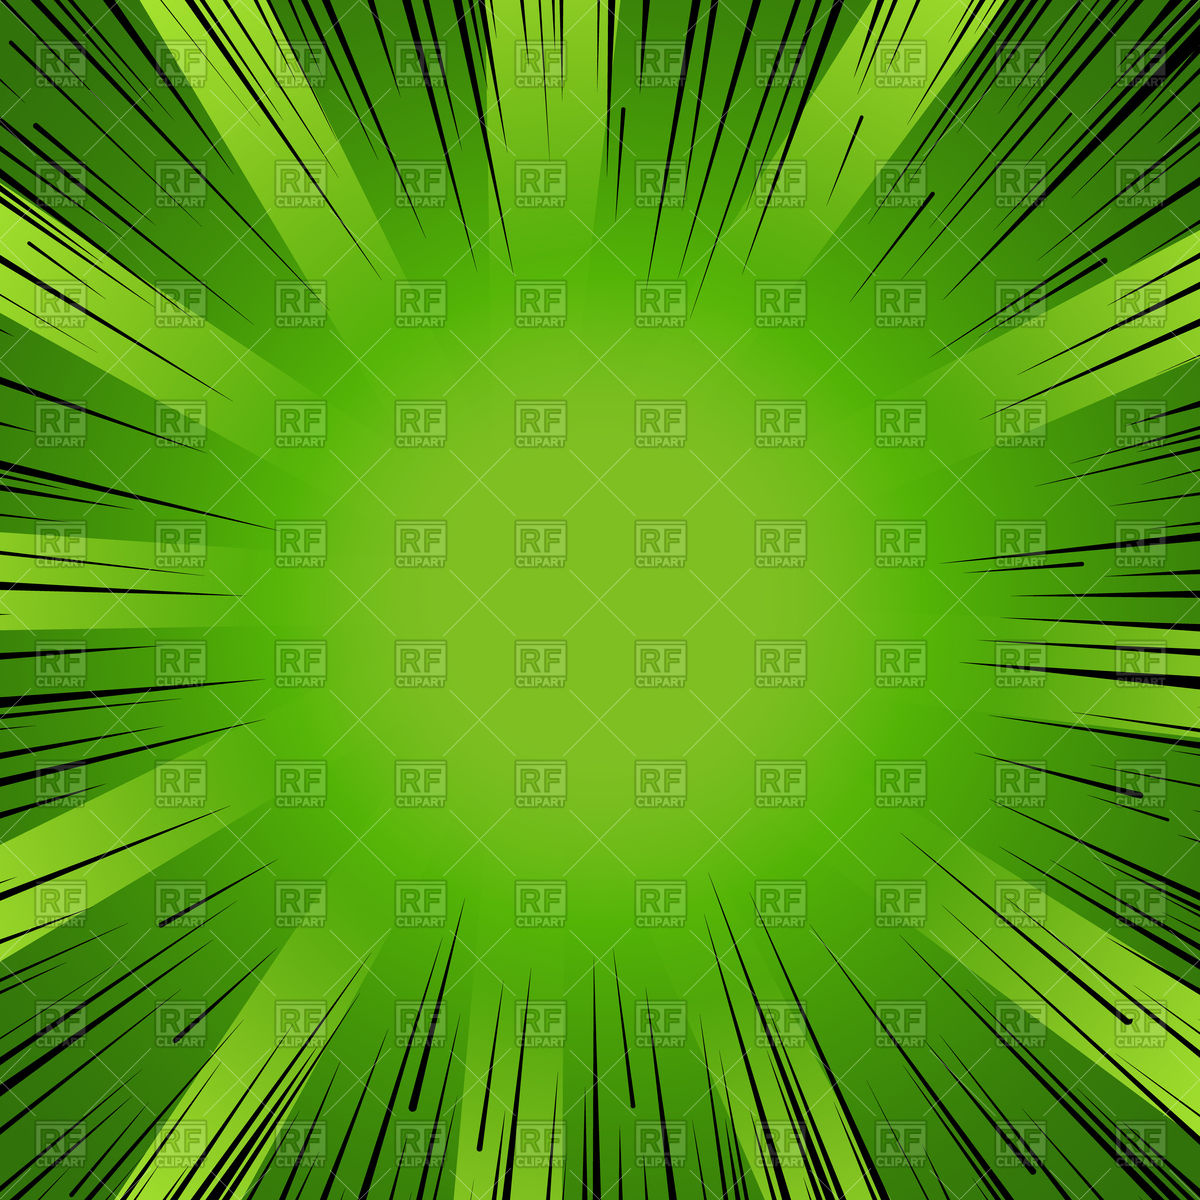 1200x1200 Abstract Comic Book Flash Explosion Green Background Vector Image